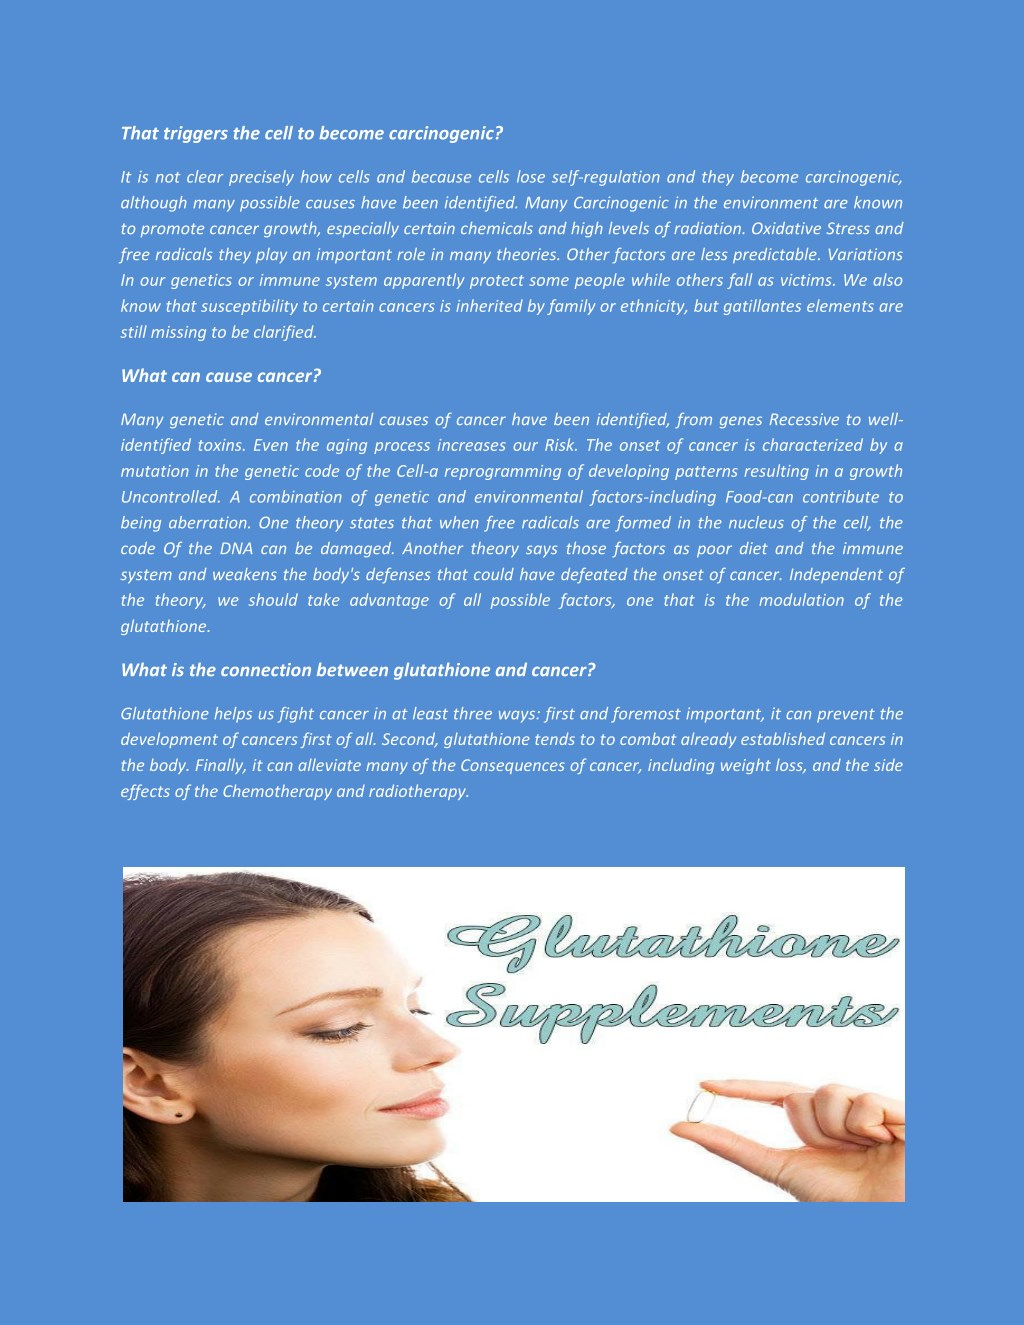 PPT - Glutathione - Their role in cancer and Anticancer